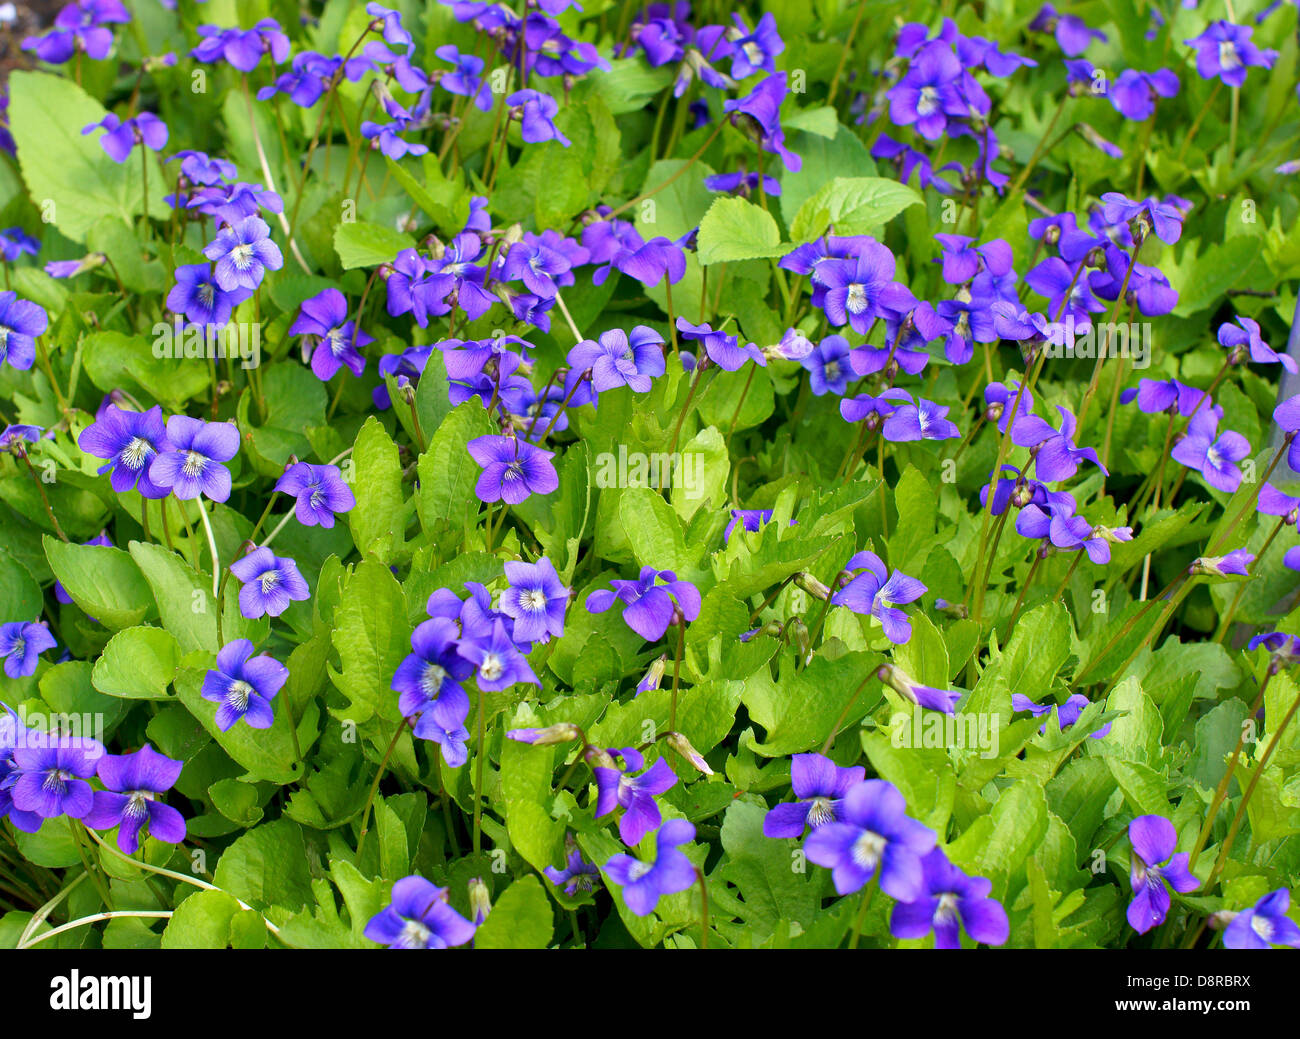 Early blue violet flowers blooming Viola palmata - Stock Image